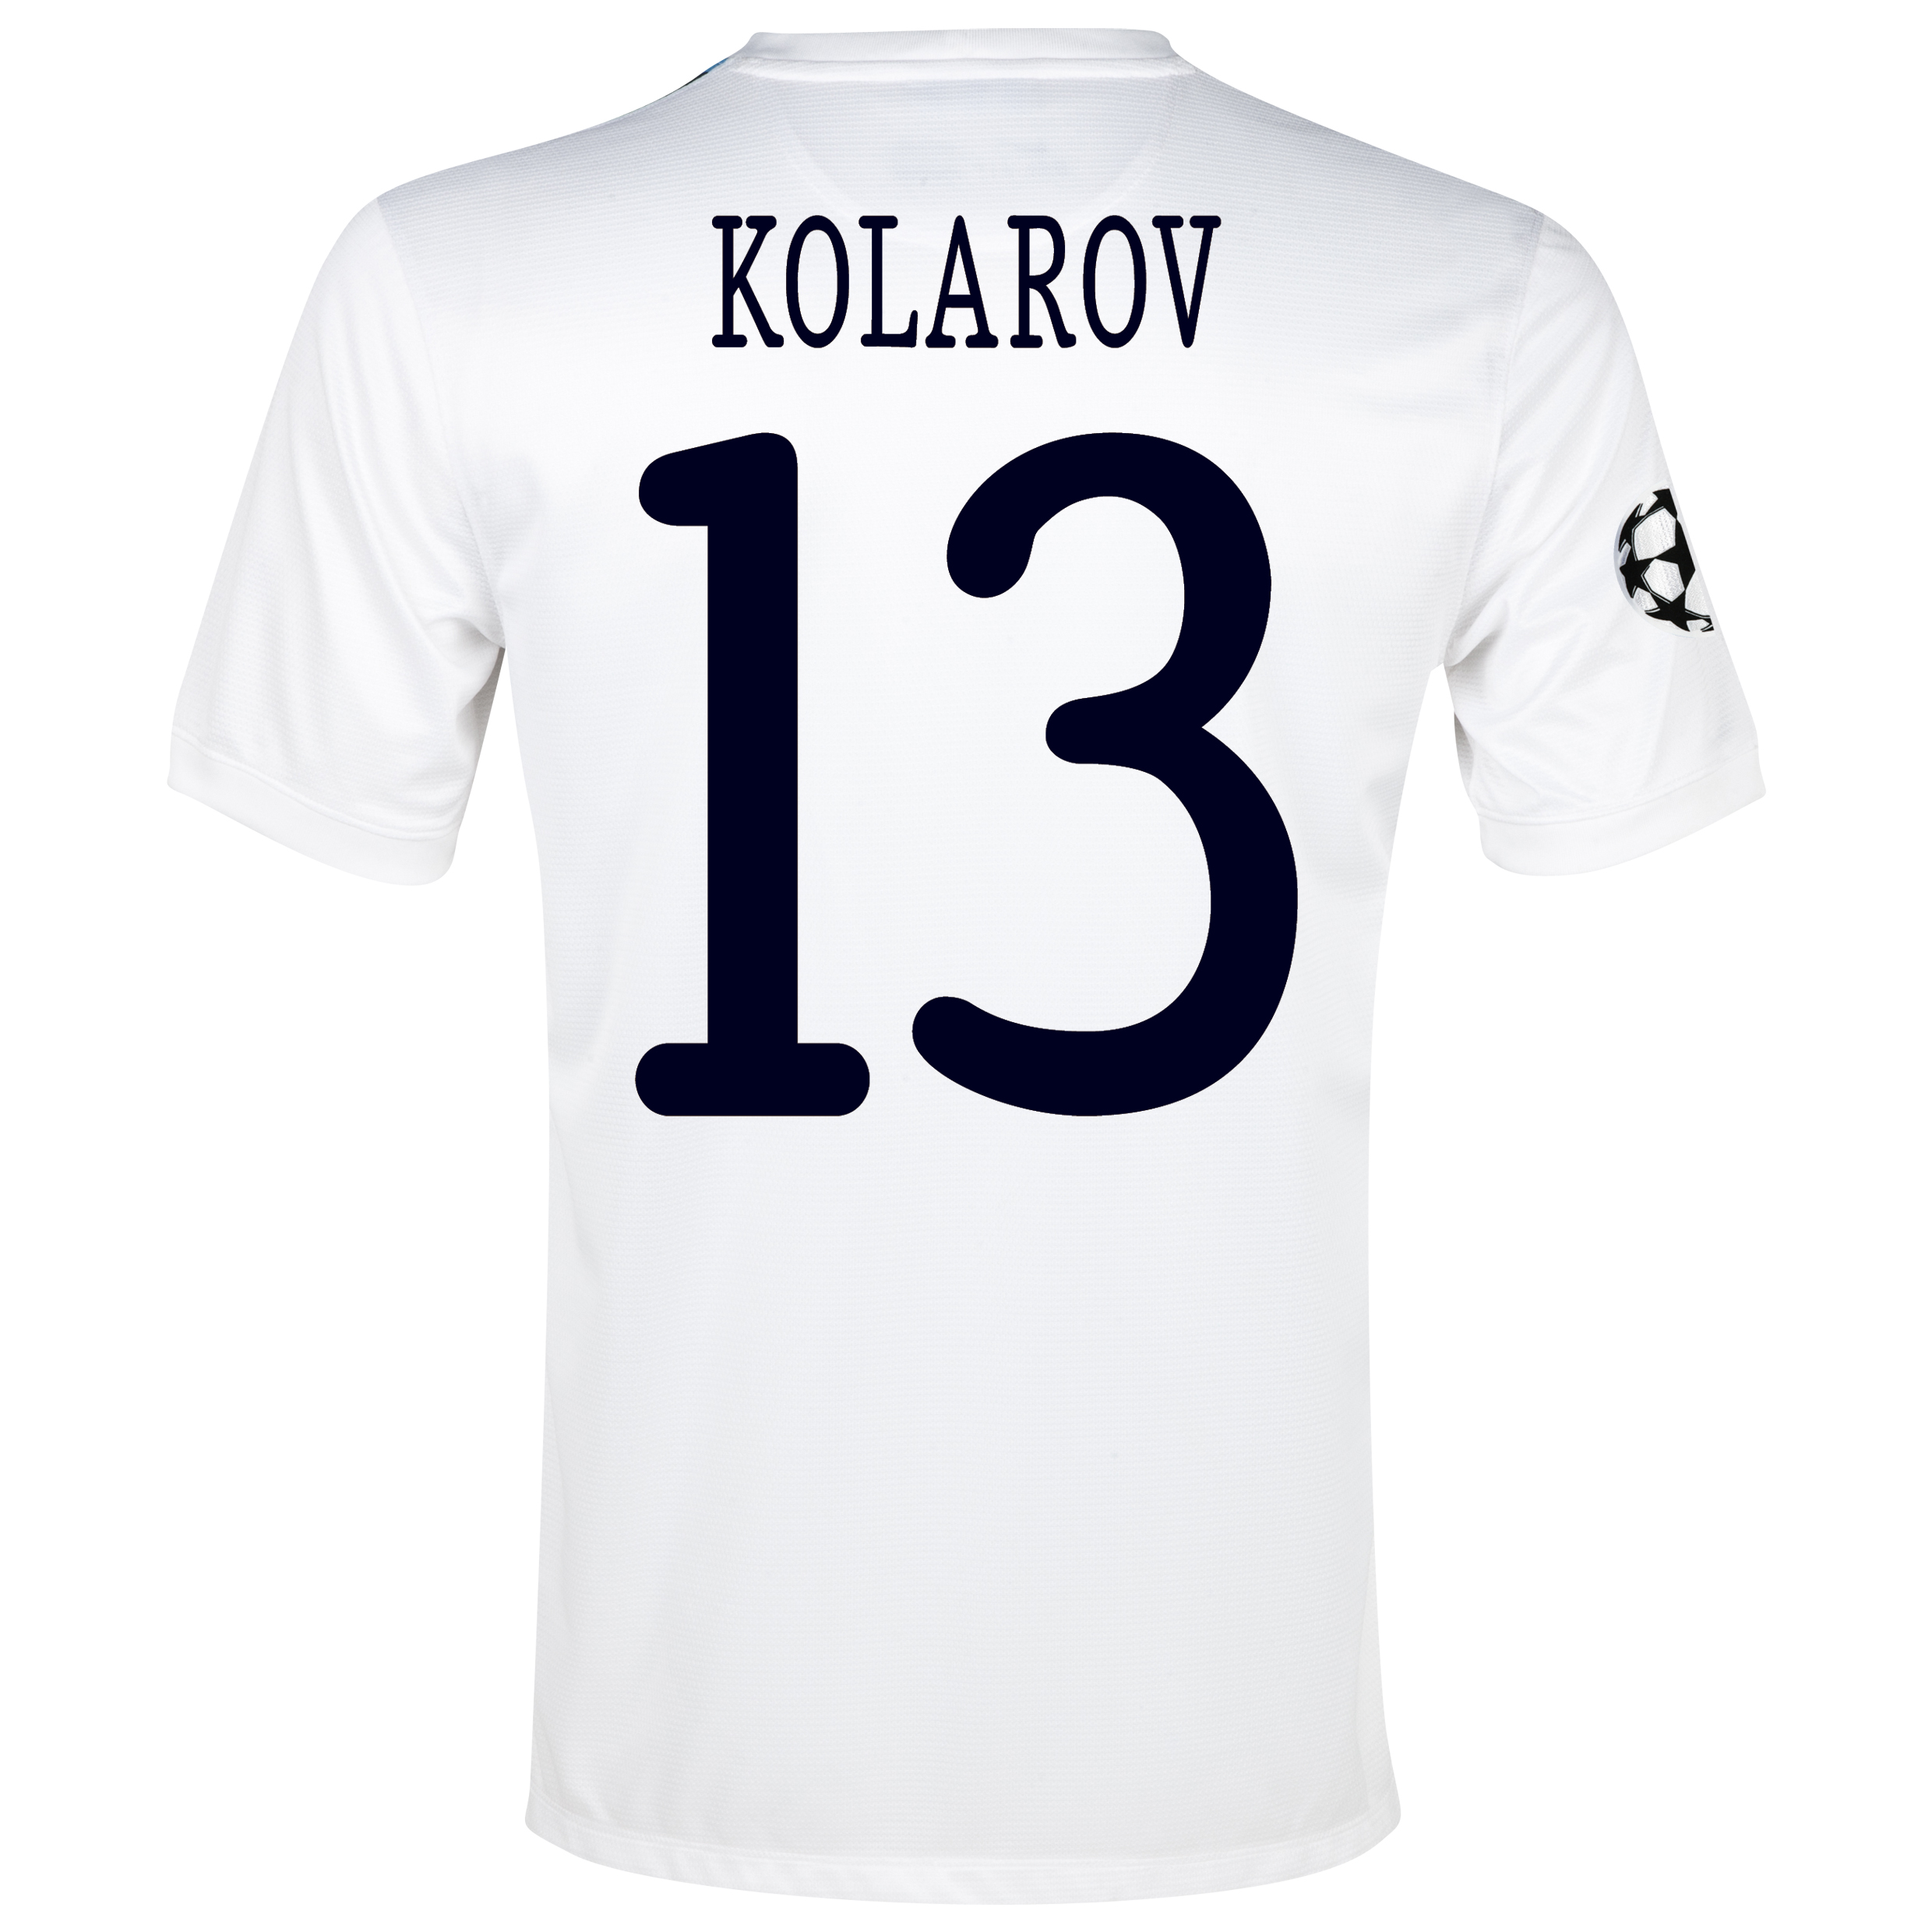 Manchester City UEFA Champions League Cup Away Shirt 2013/14 White with Kolarov 13 printing